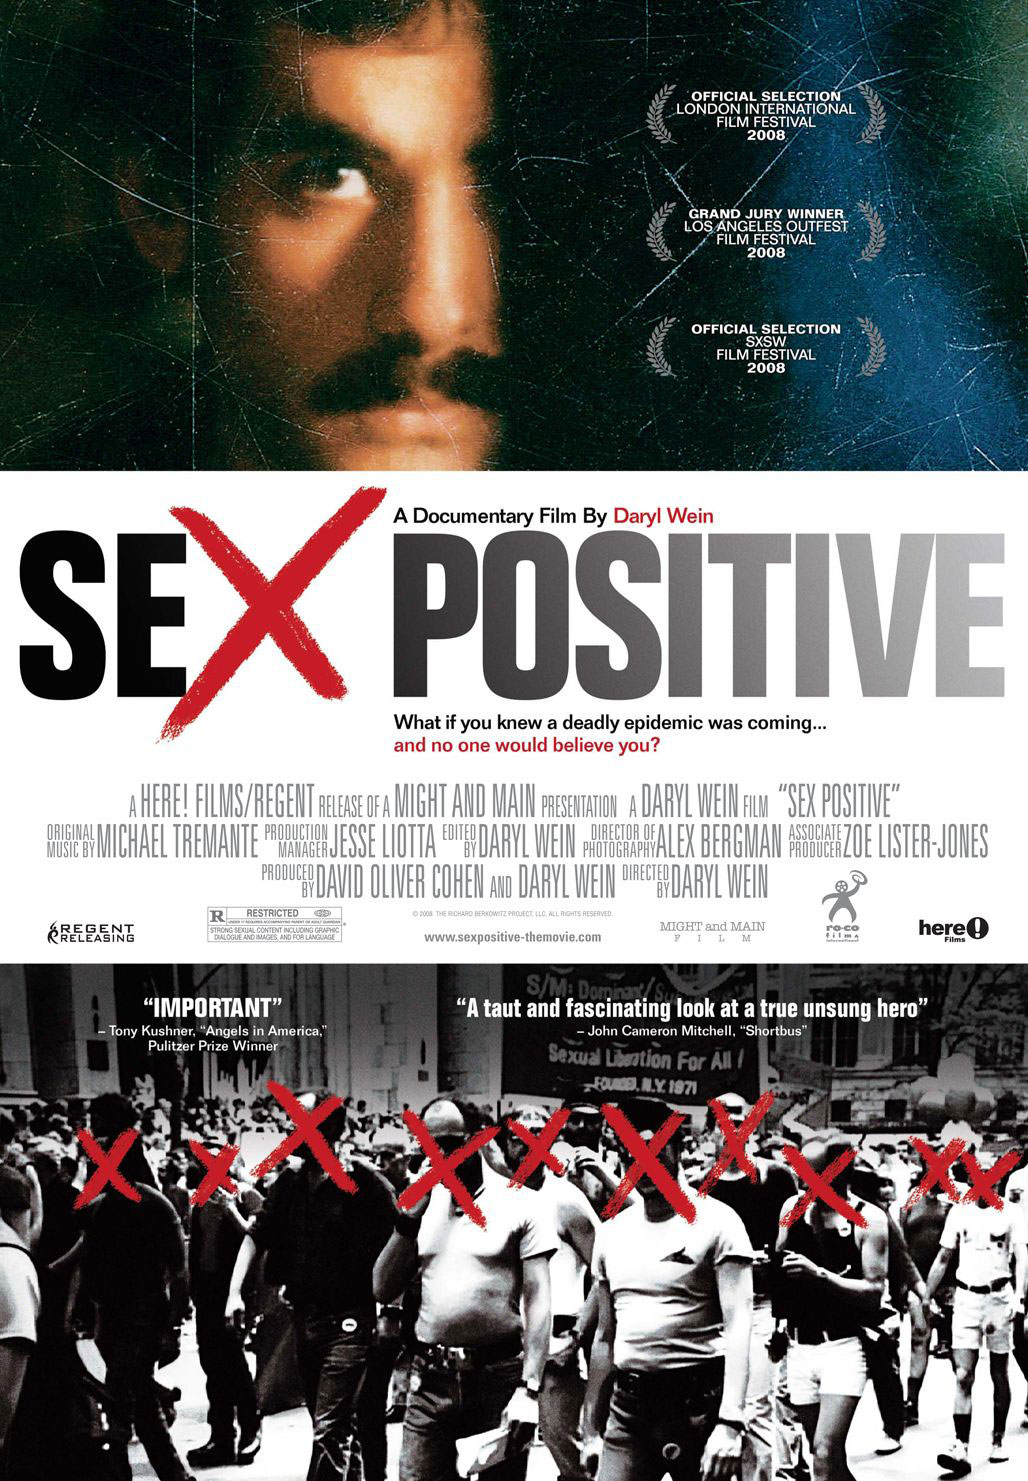 play video on Hulu 01:57. Sex Positive. Free | Hulu Posted: 10/8/2011